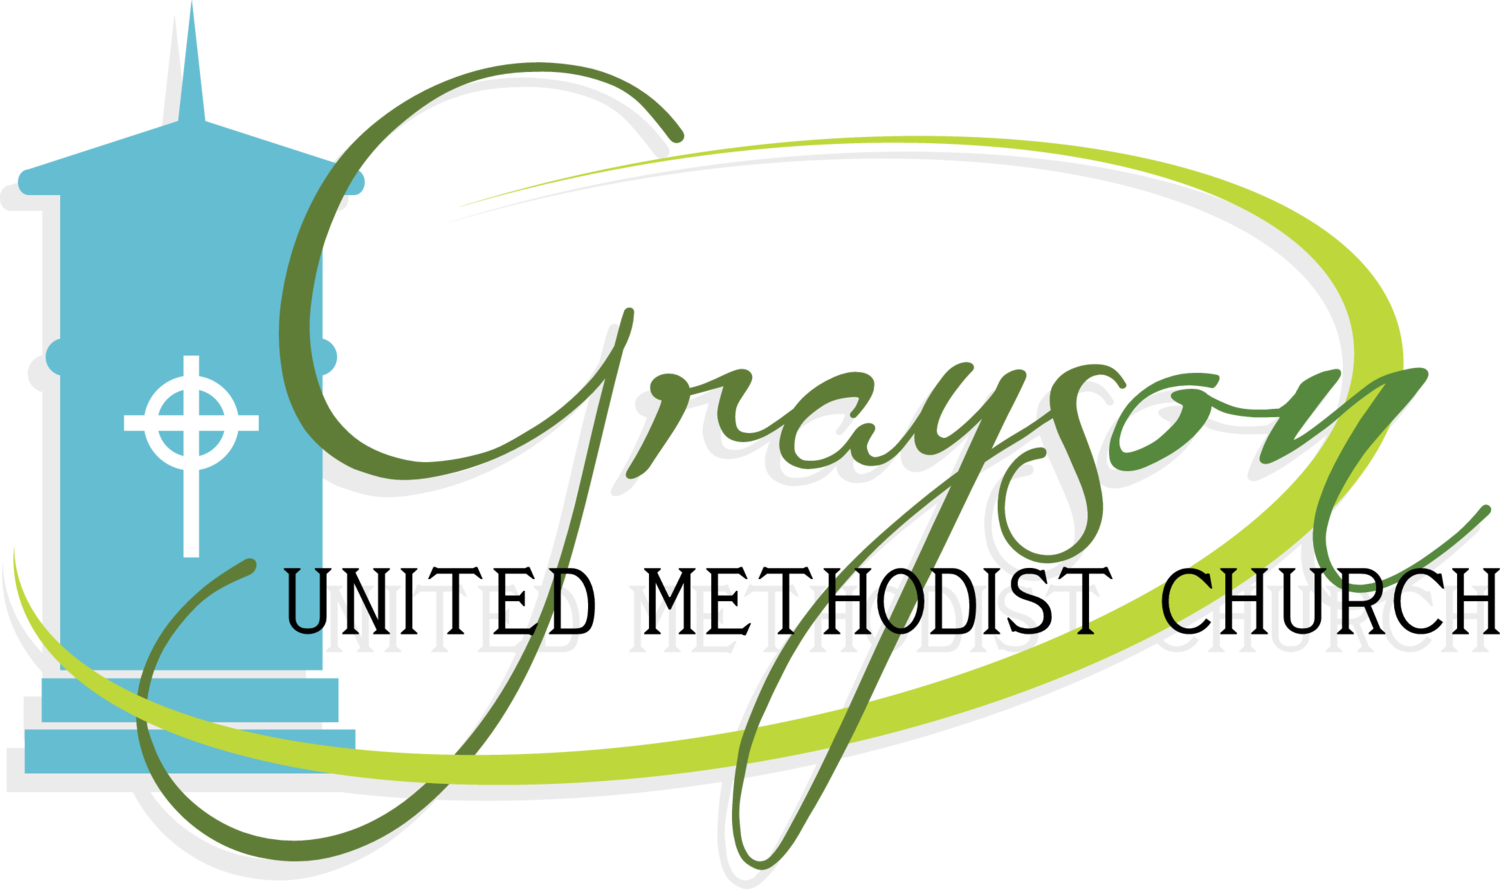 Grayson United Methodist church